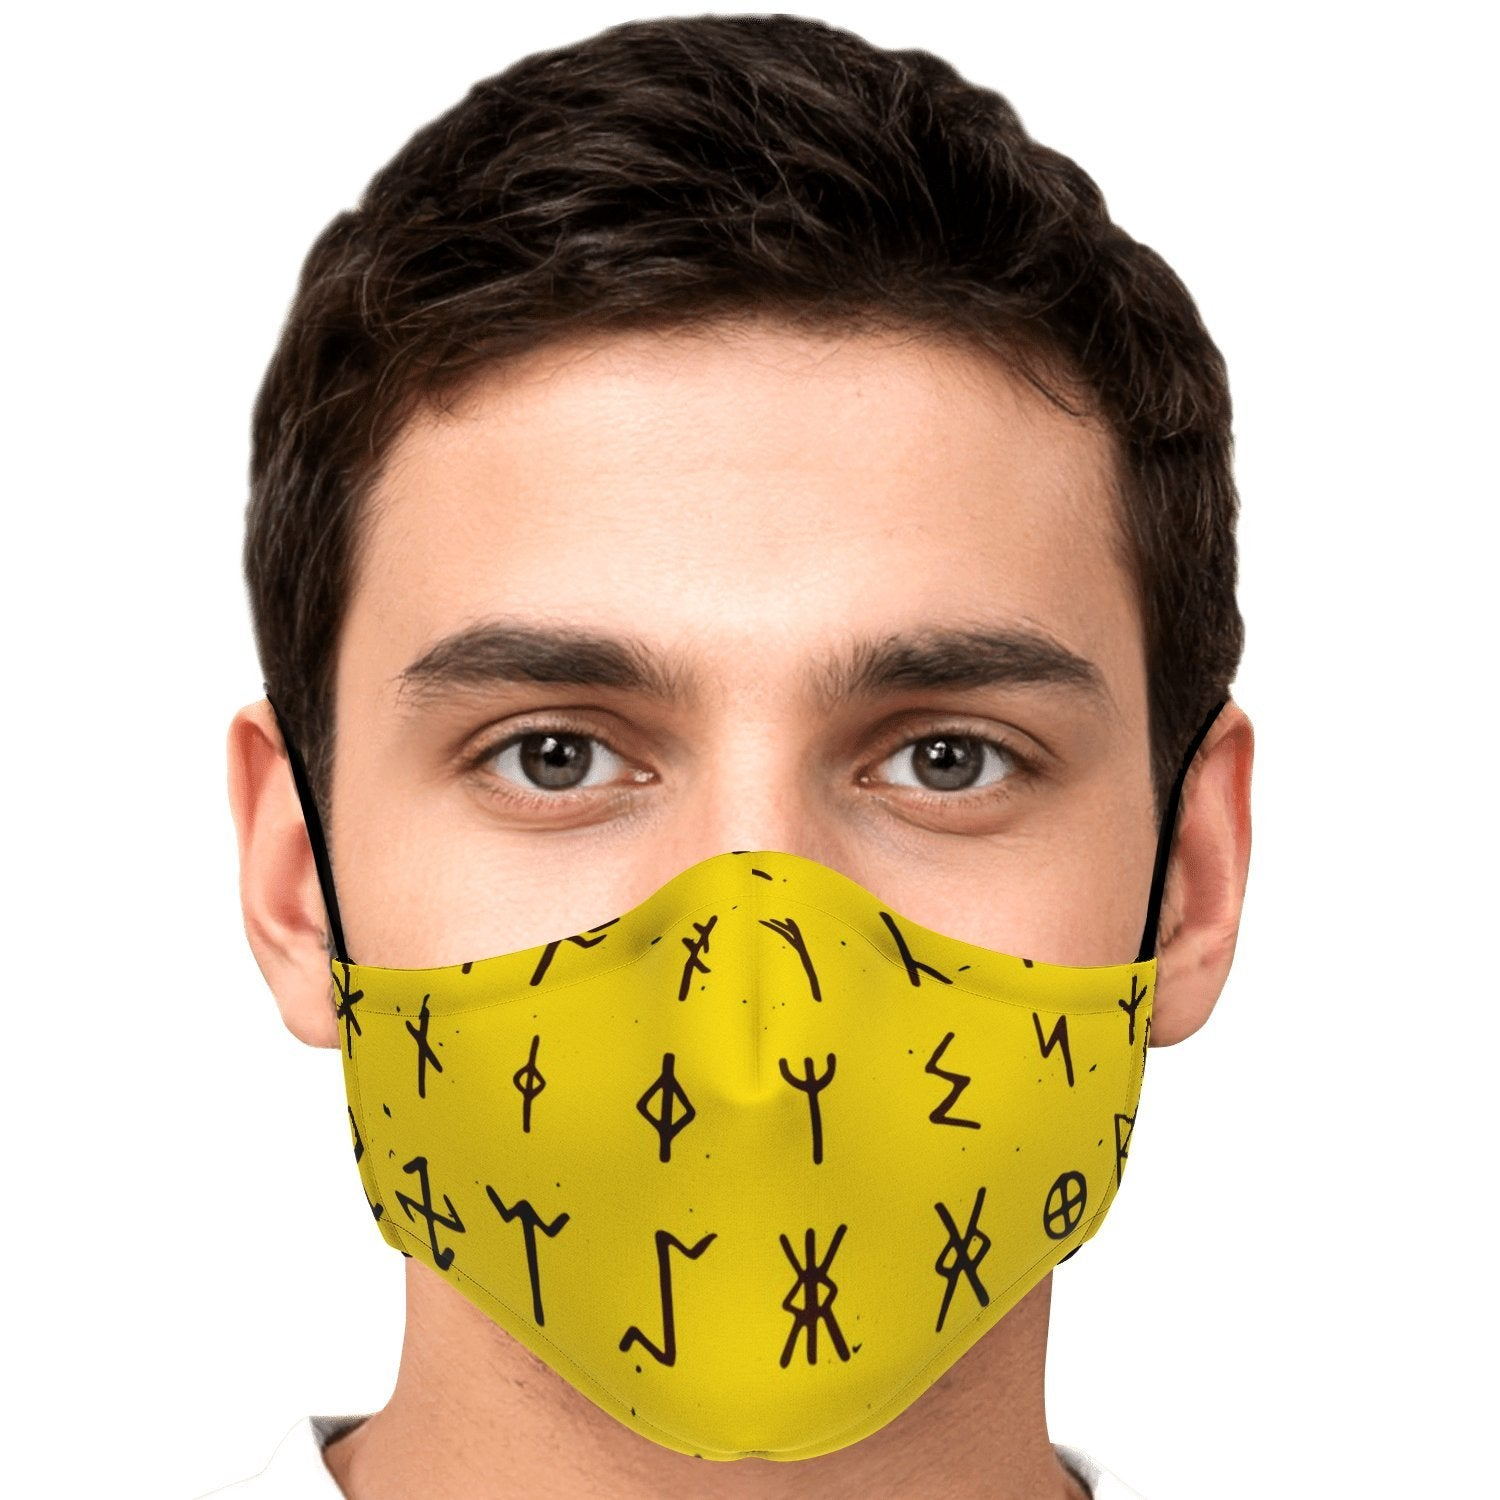 Viking Runes Face Mask Cover - Yellow